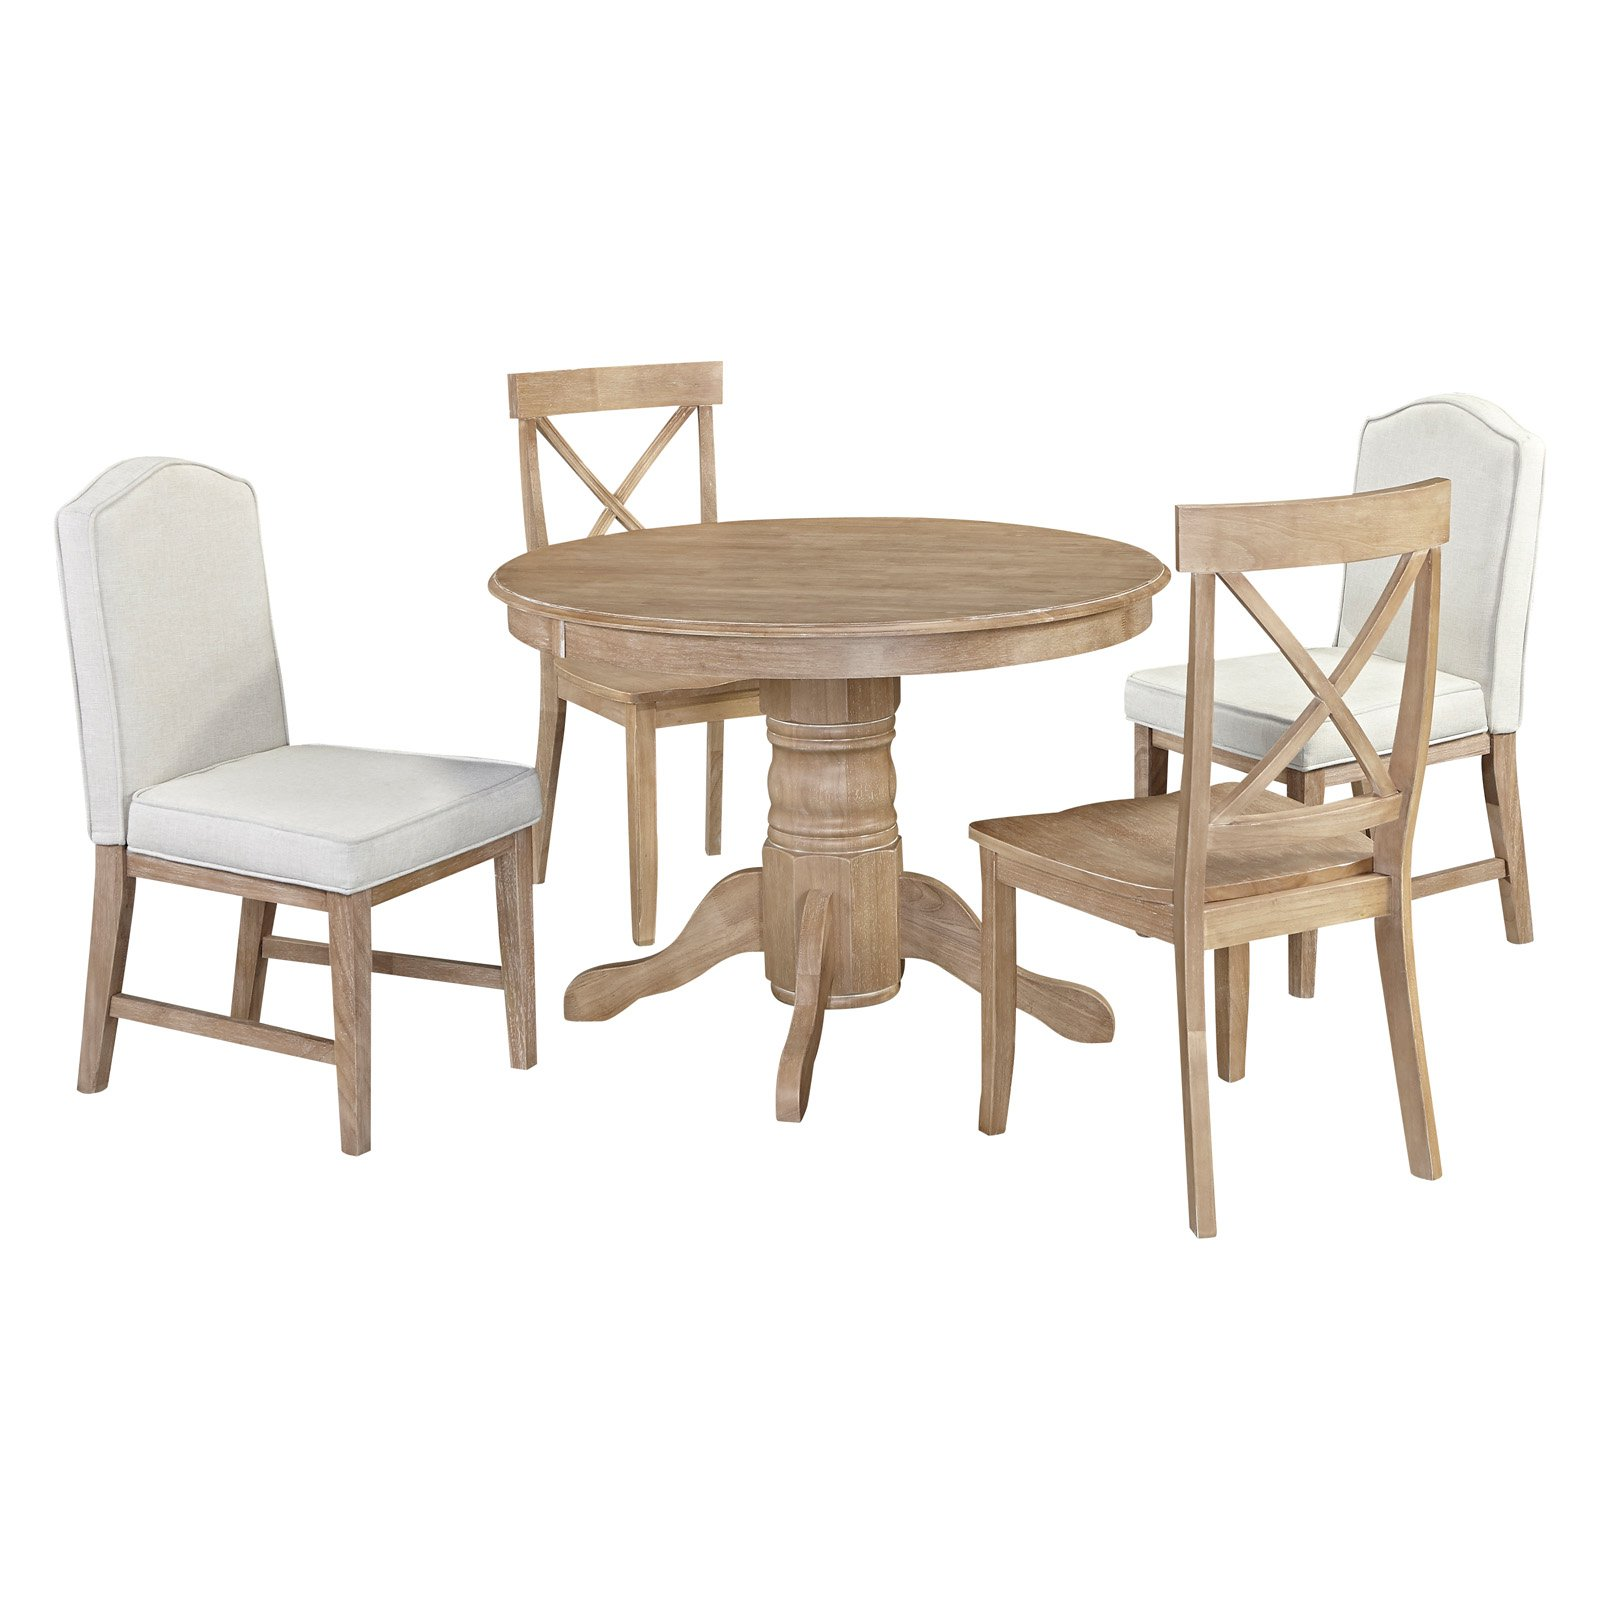 Home Styles Classic 5-Piece Dining Set with Cross Back and Upholstered Dining Chairs